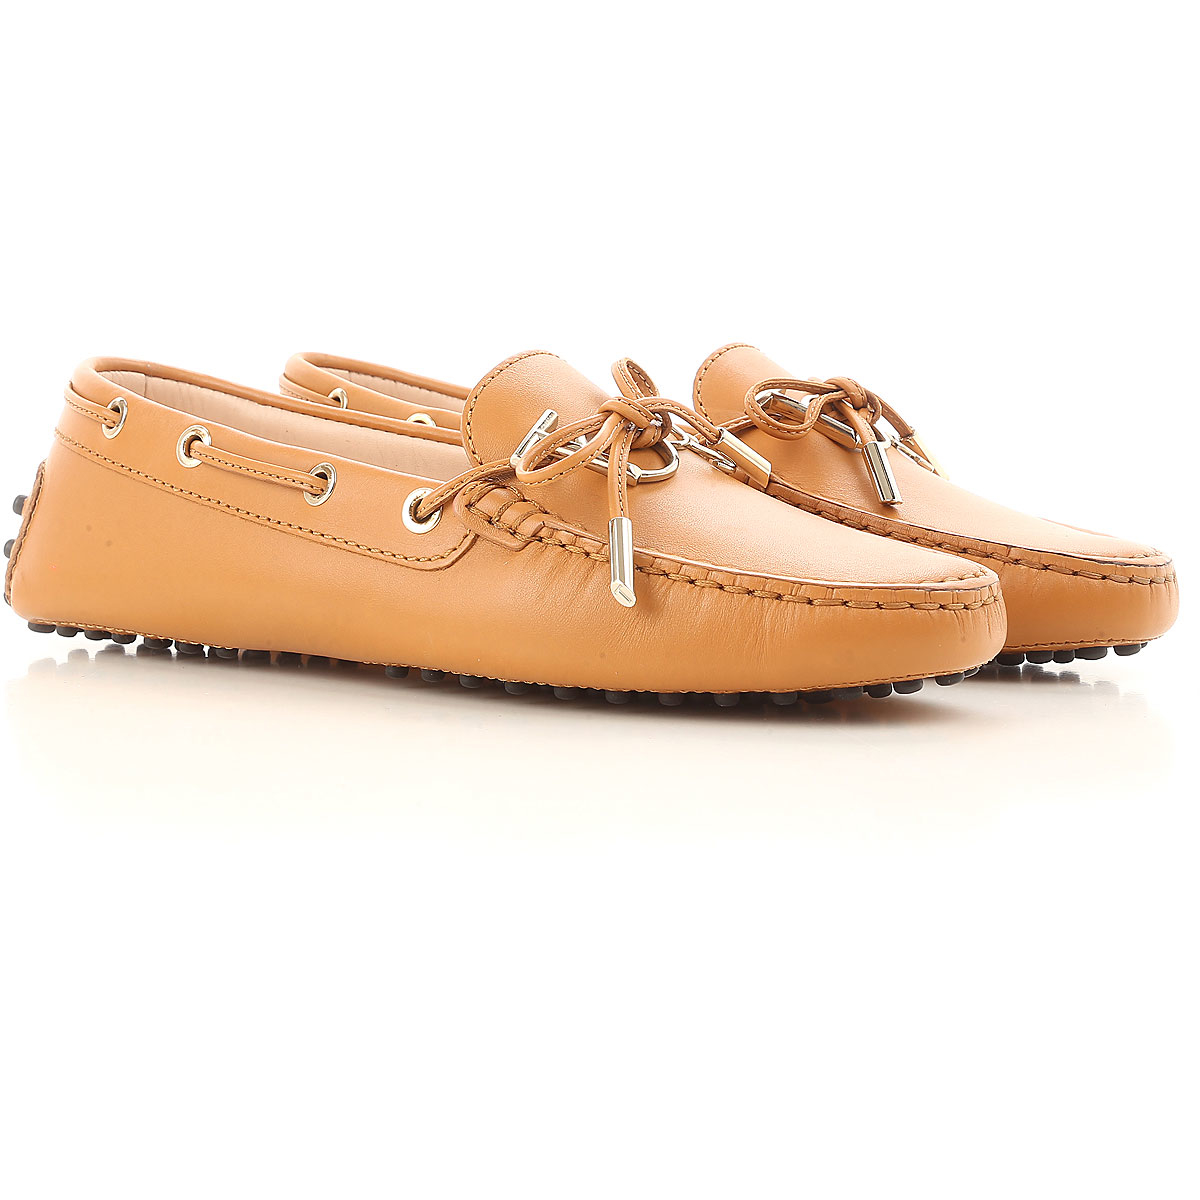 Tods Loafers for Women On Sale Light Leather Brown UK - GOOFASH